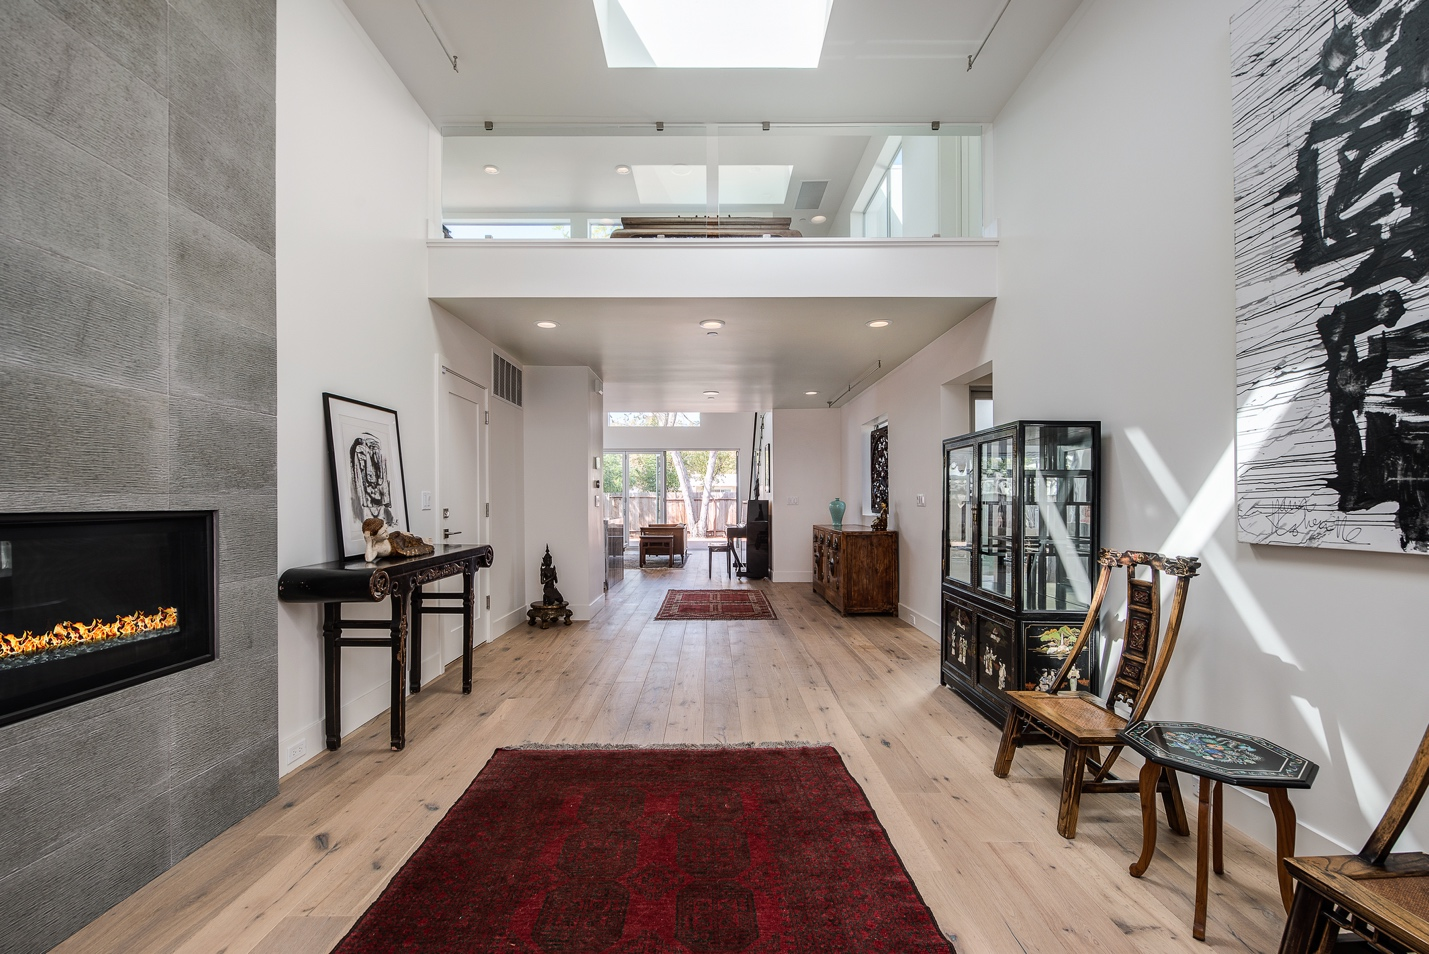 Classical Corridor, interior work, architect design, Menlo Park